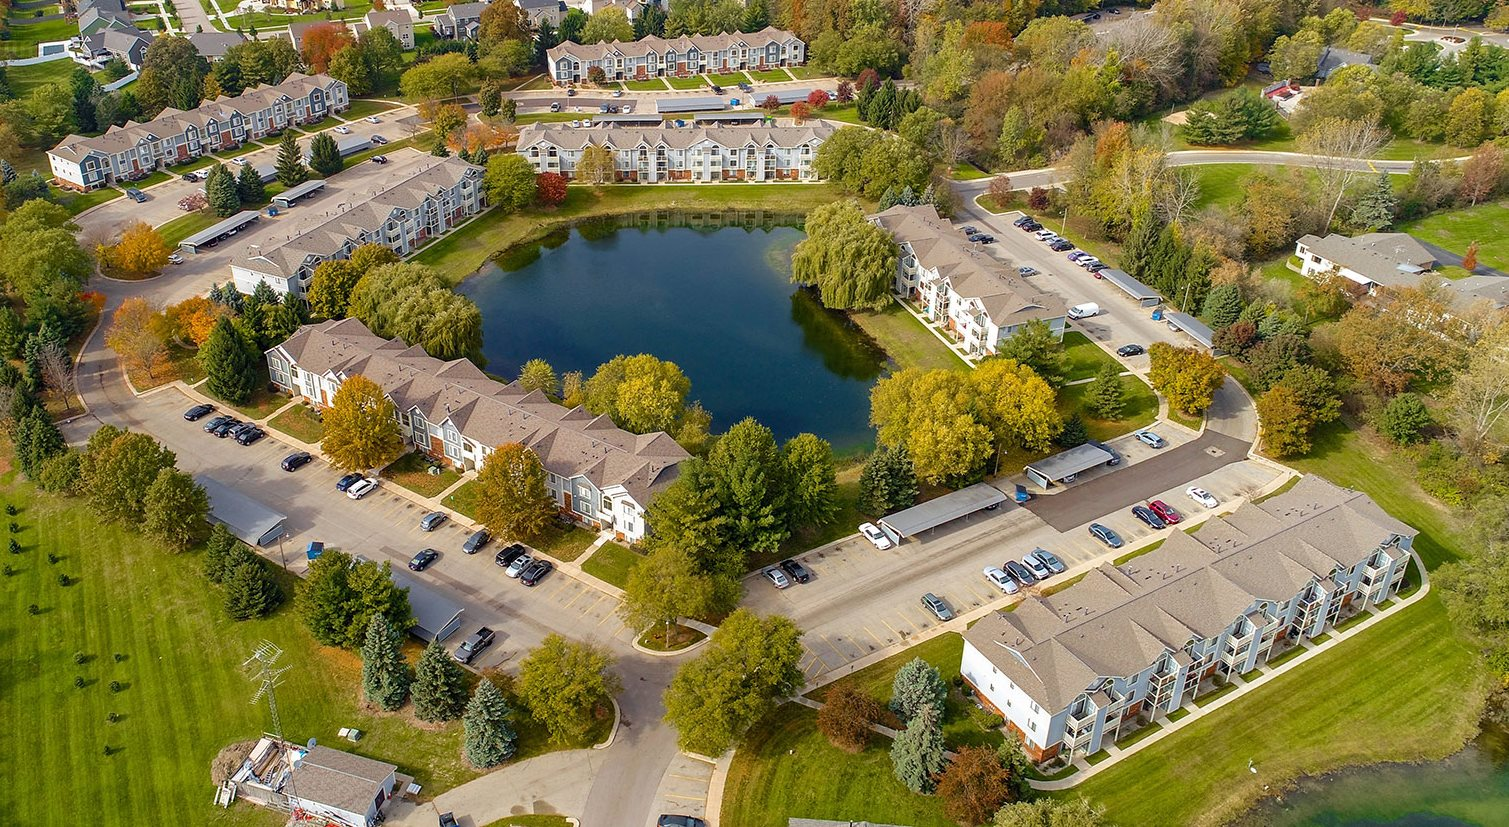 Aerial View of Property at Byron Lakes Apartments, Michigan